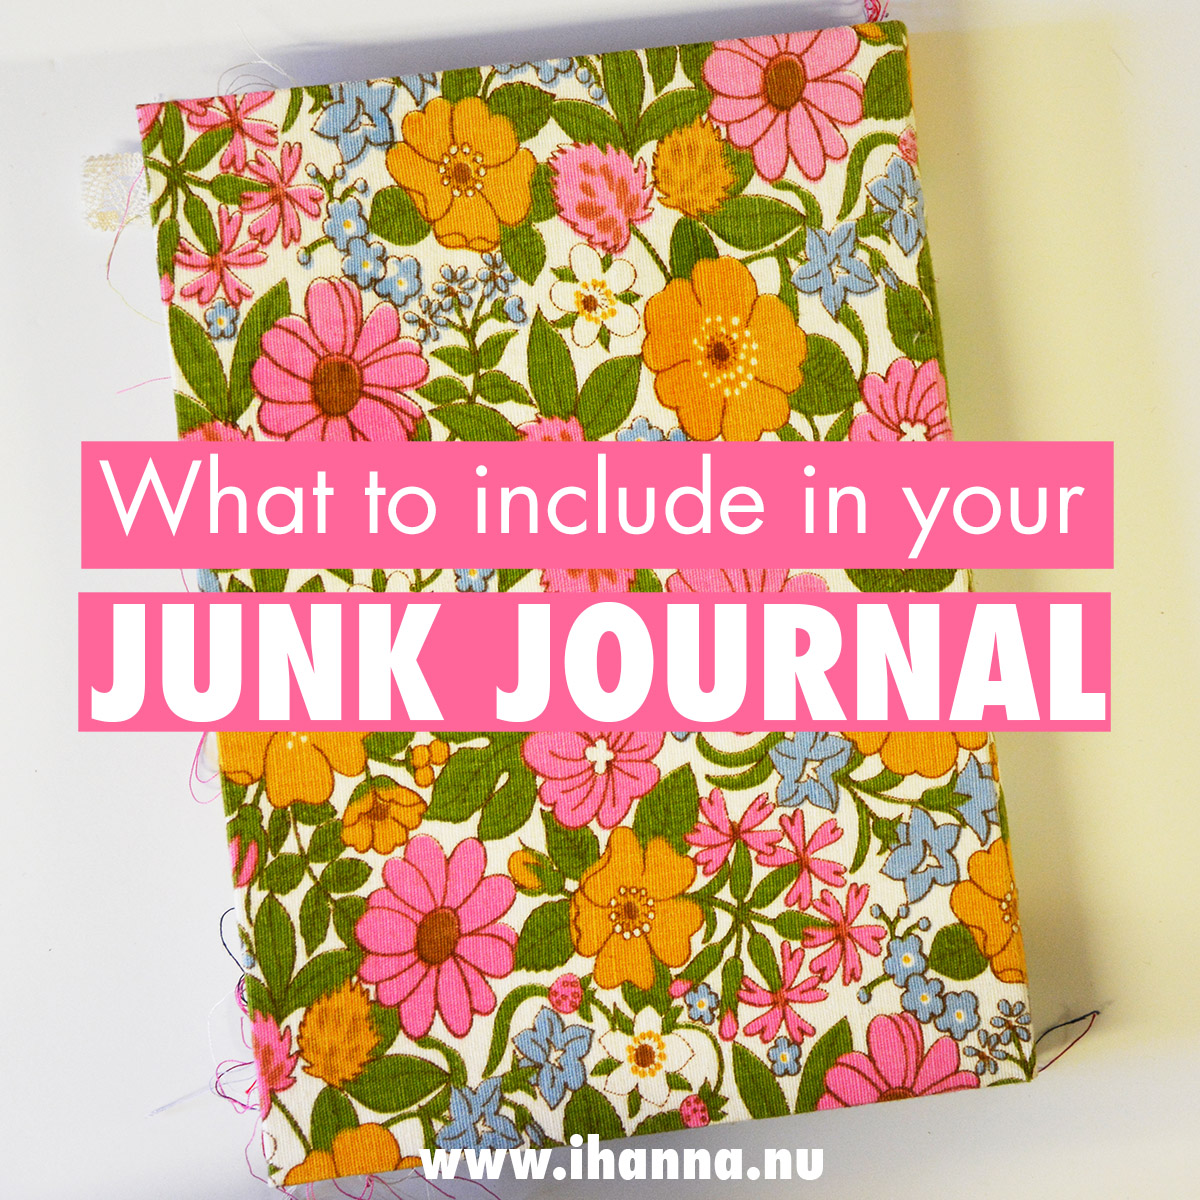 Junk Journal by iHanna: What to include in your junk journal video